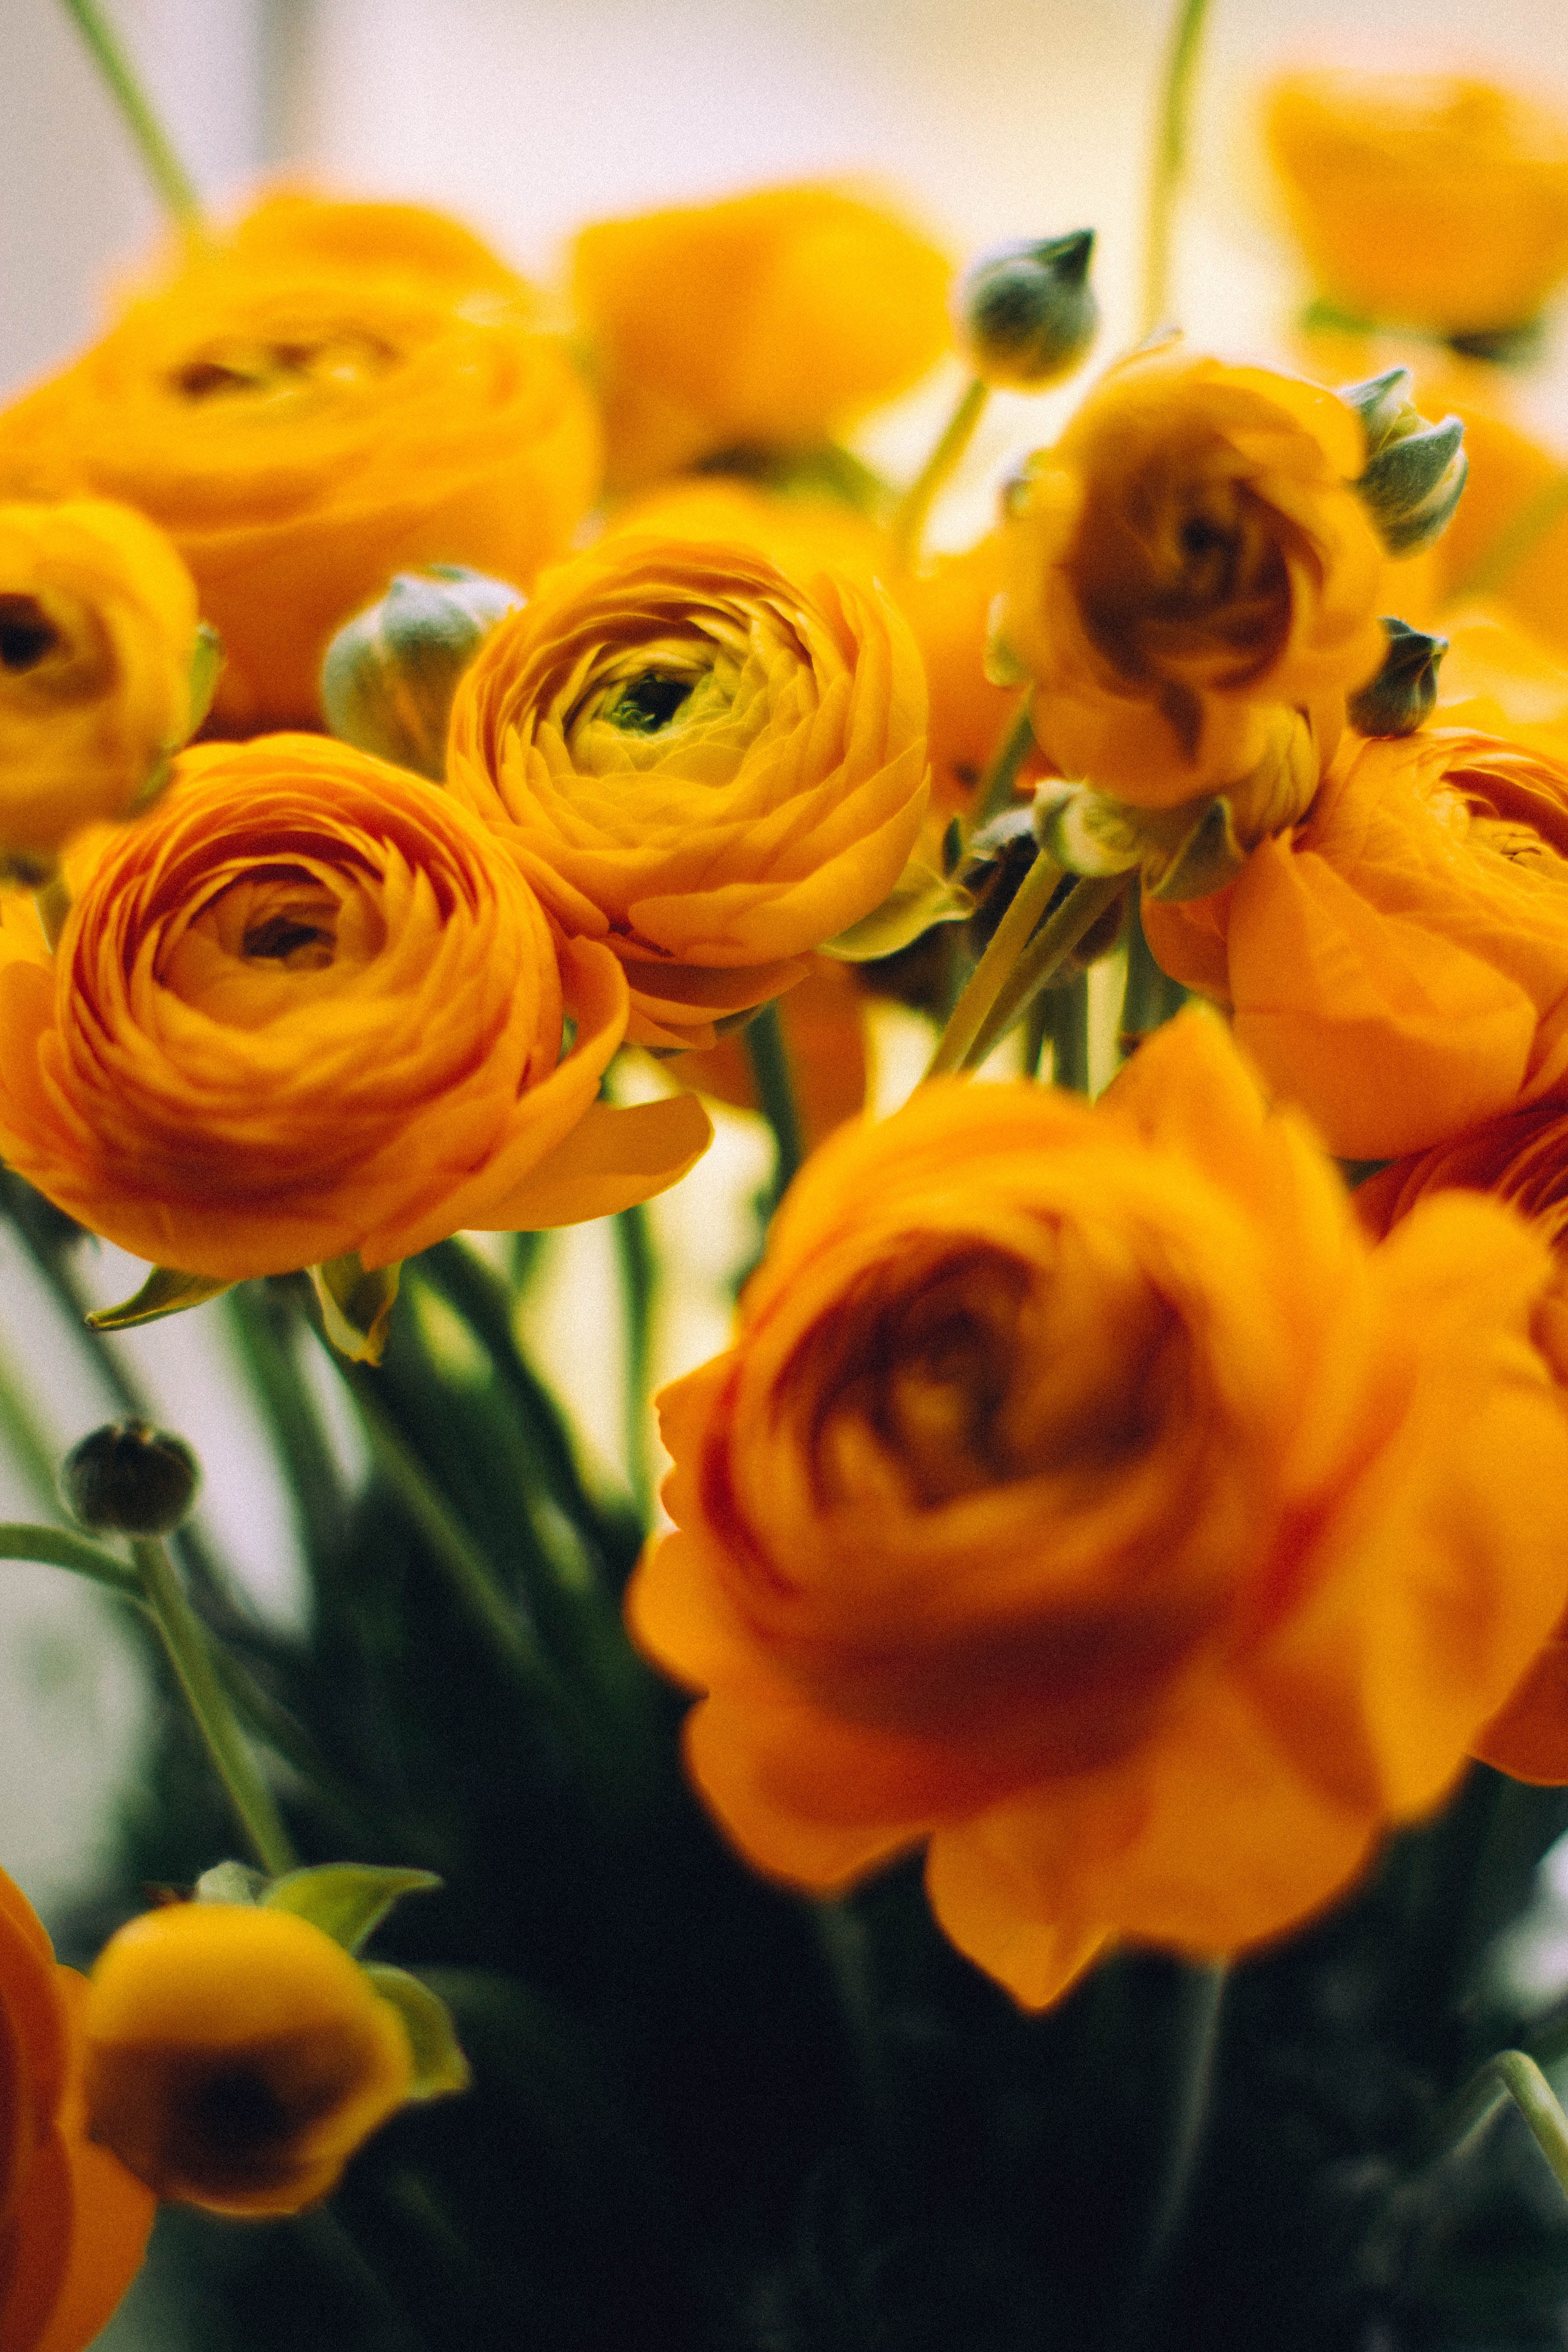 Close-up Photo of Yellow Garden Roses